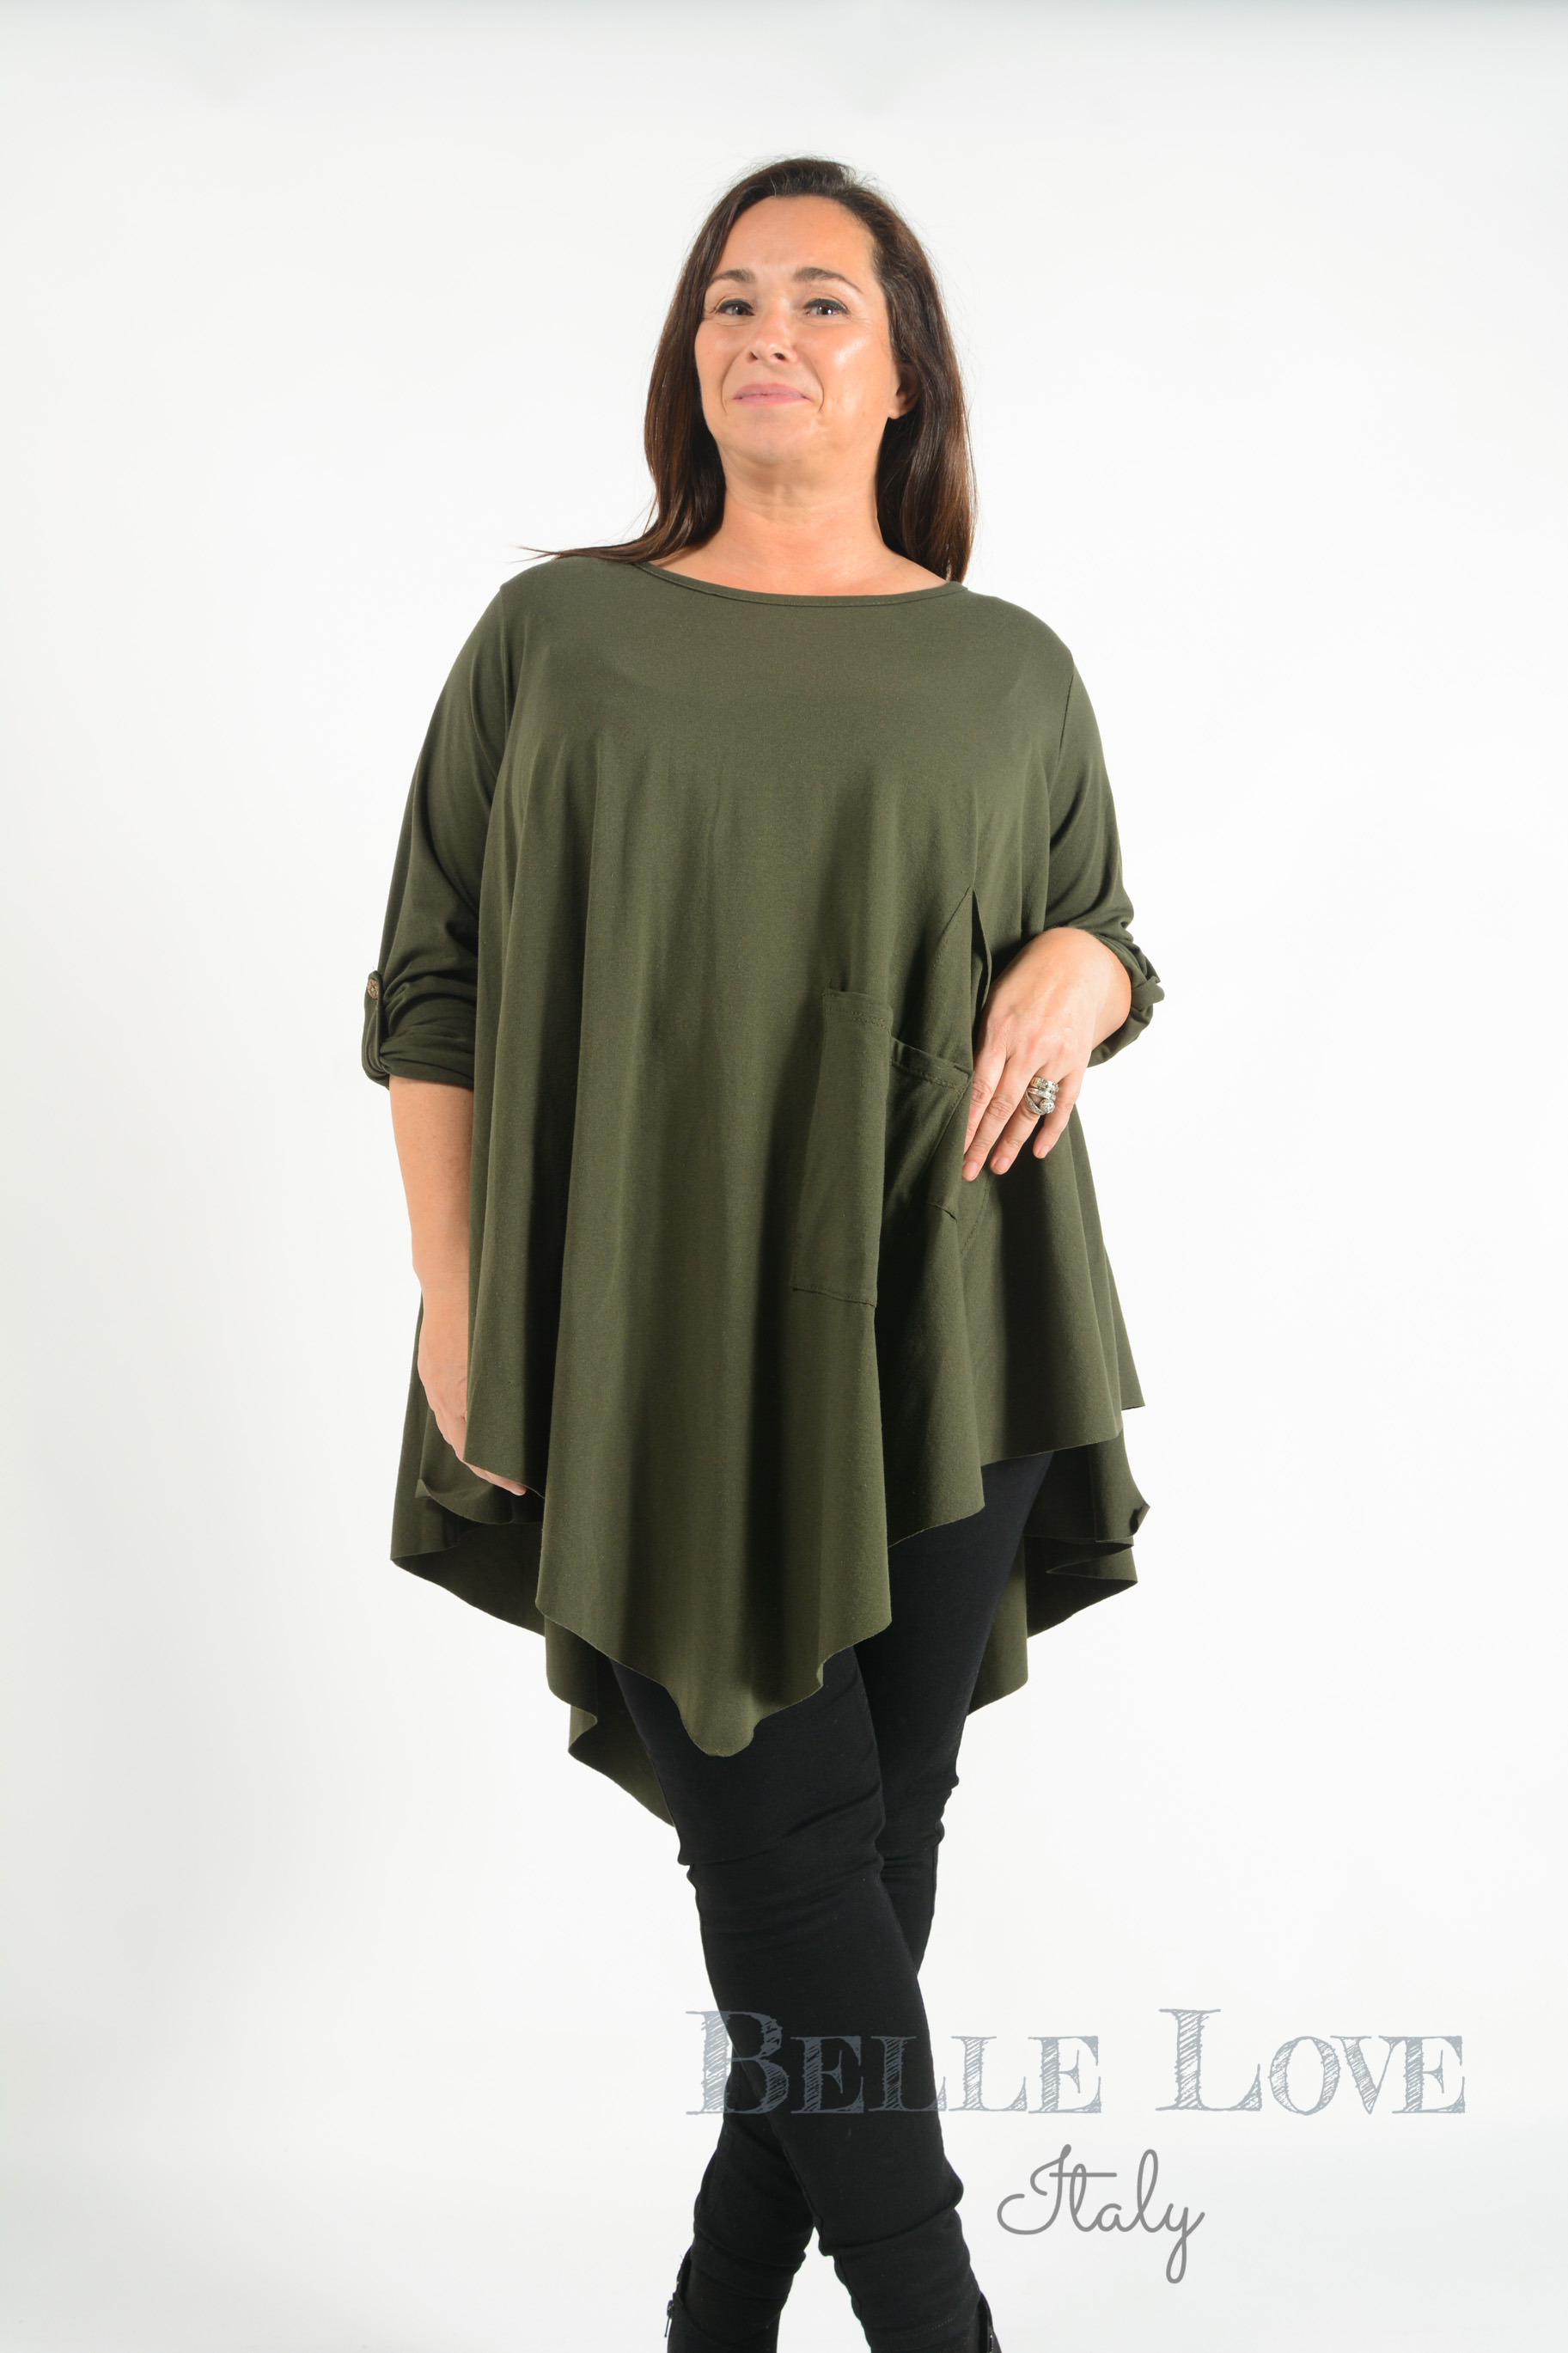 Belle Love Italy Trixibelle Flared Tunic Top